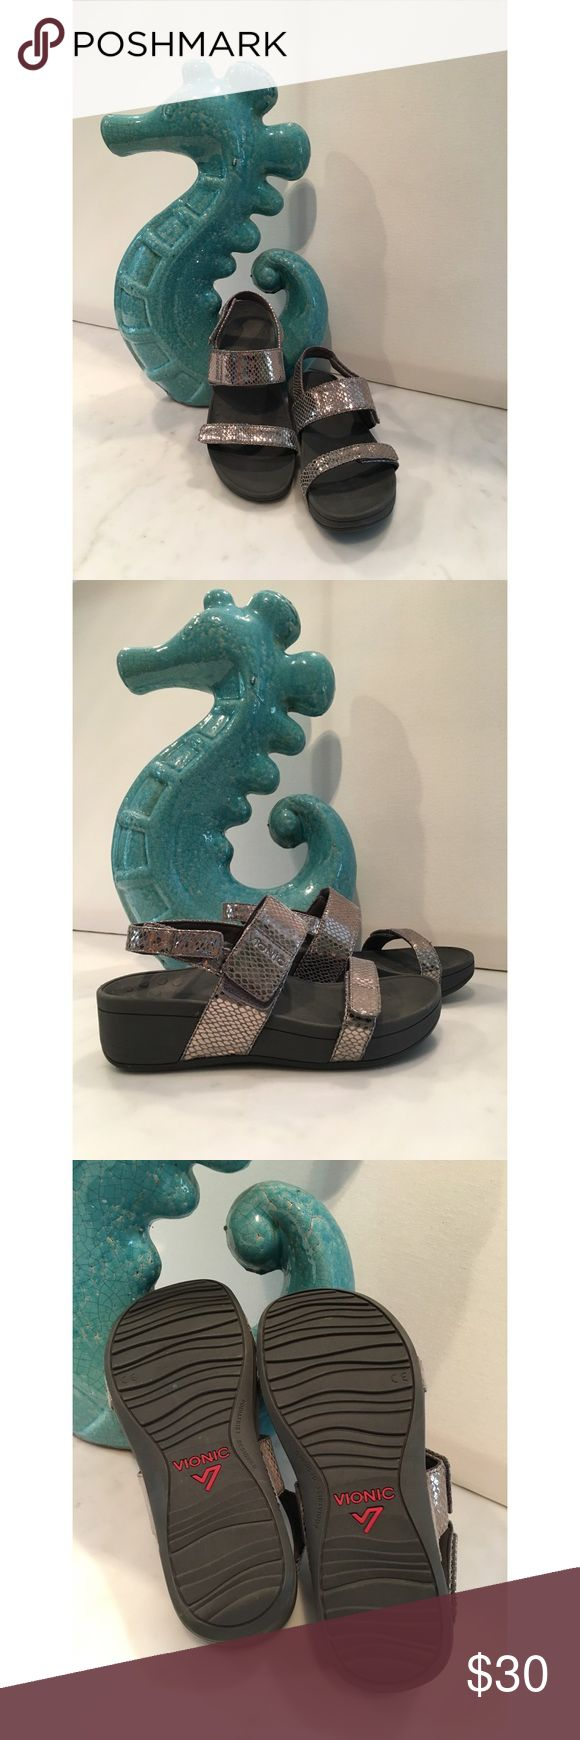 🌴Vionic Strappy Pewter Sandals🌴 Comfortable and stylish sandals from Vionic. Theses are a pewter metallic color that goes with everything. Each strap is adjustable to your foot with Velcro that is in pristine condition. Dark grey soles. Great condition. Vionic Shoes Sandals